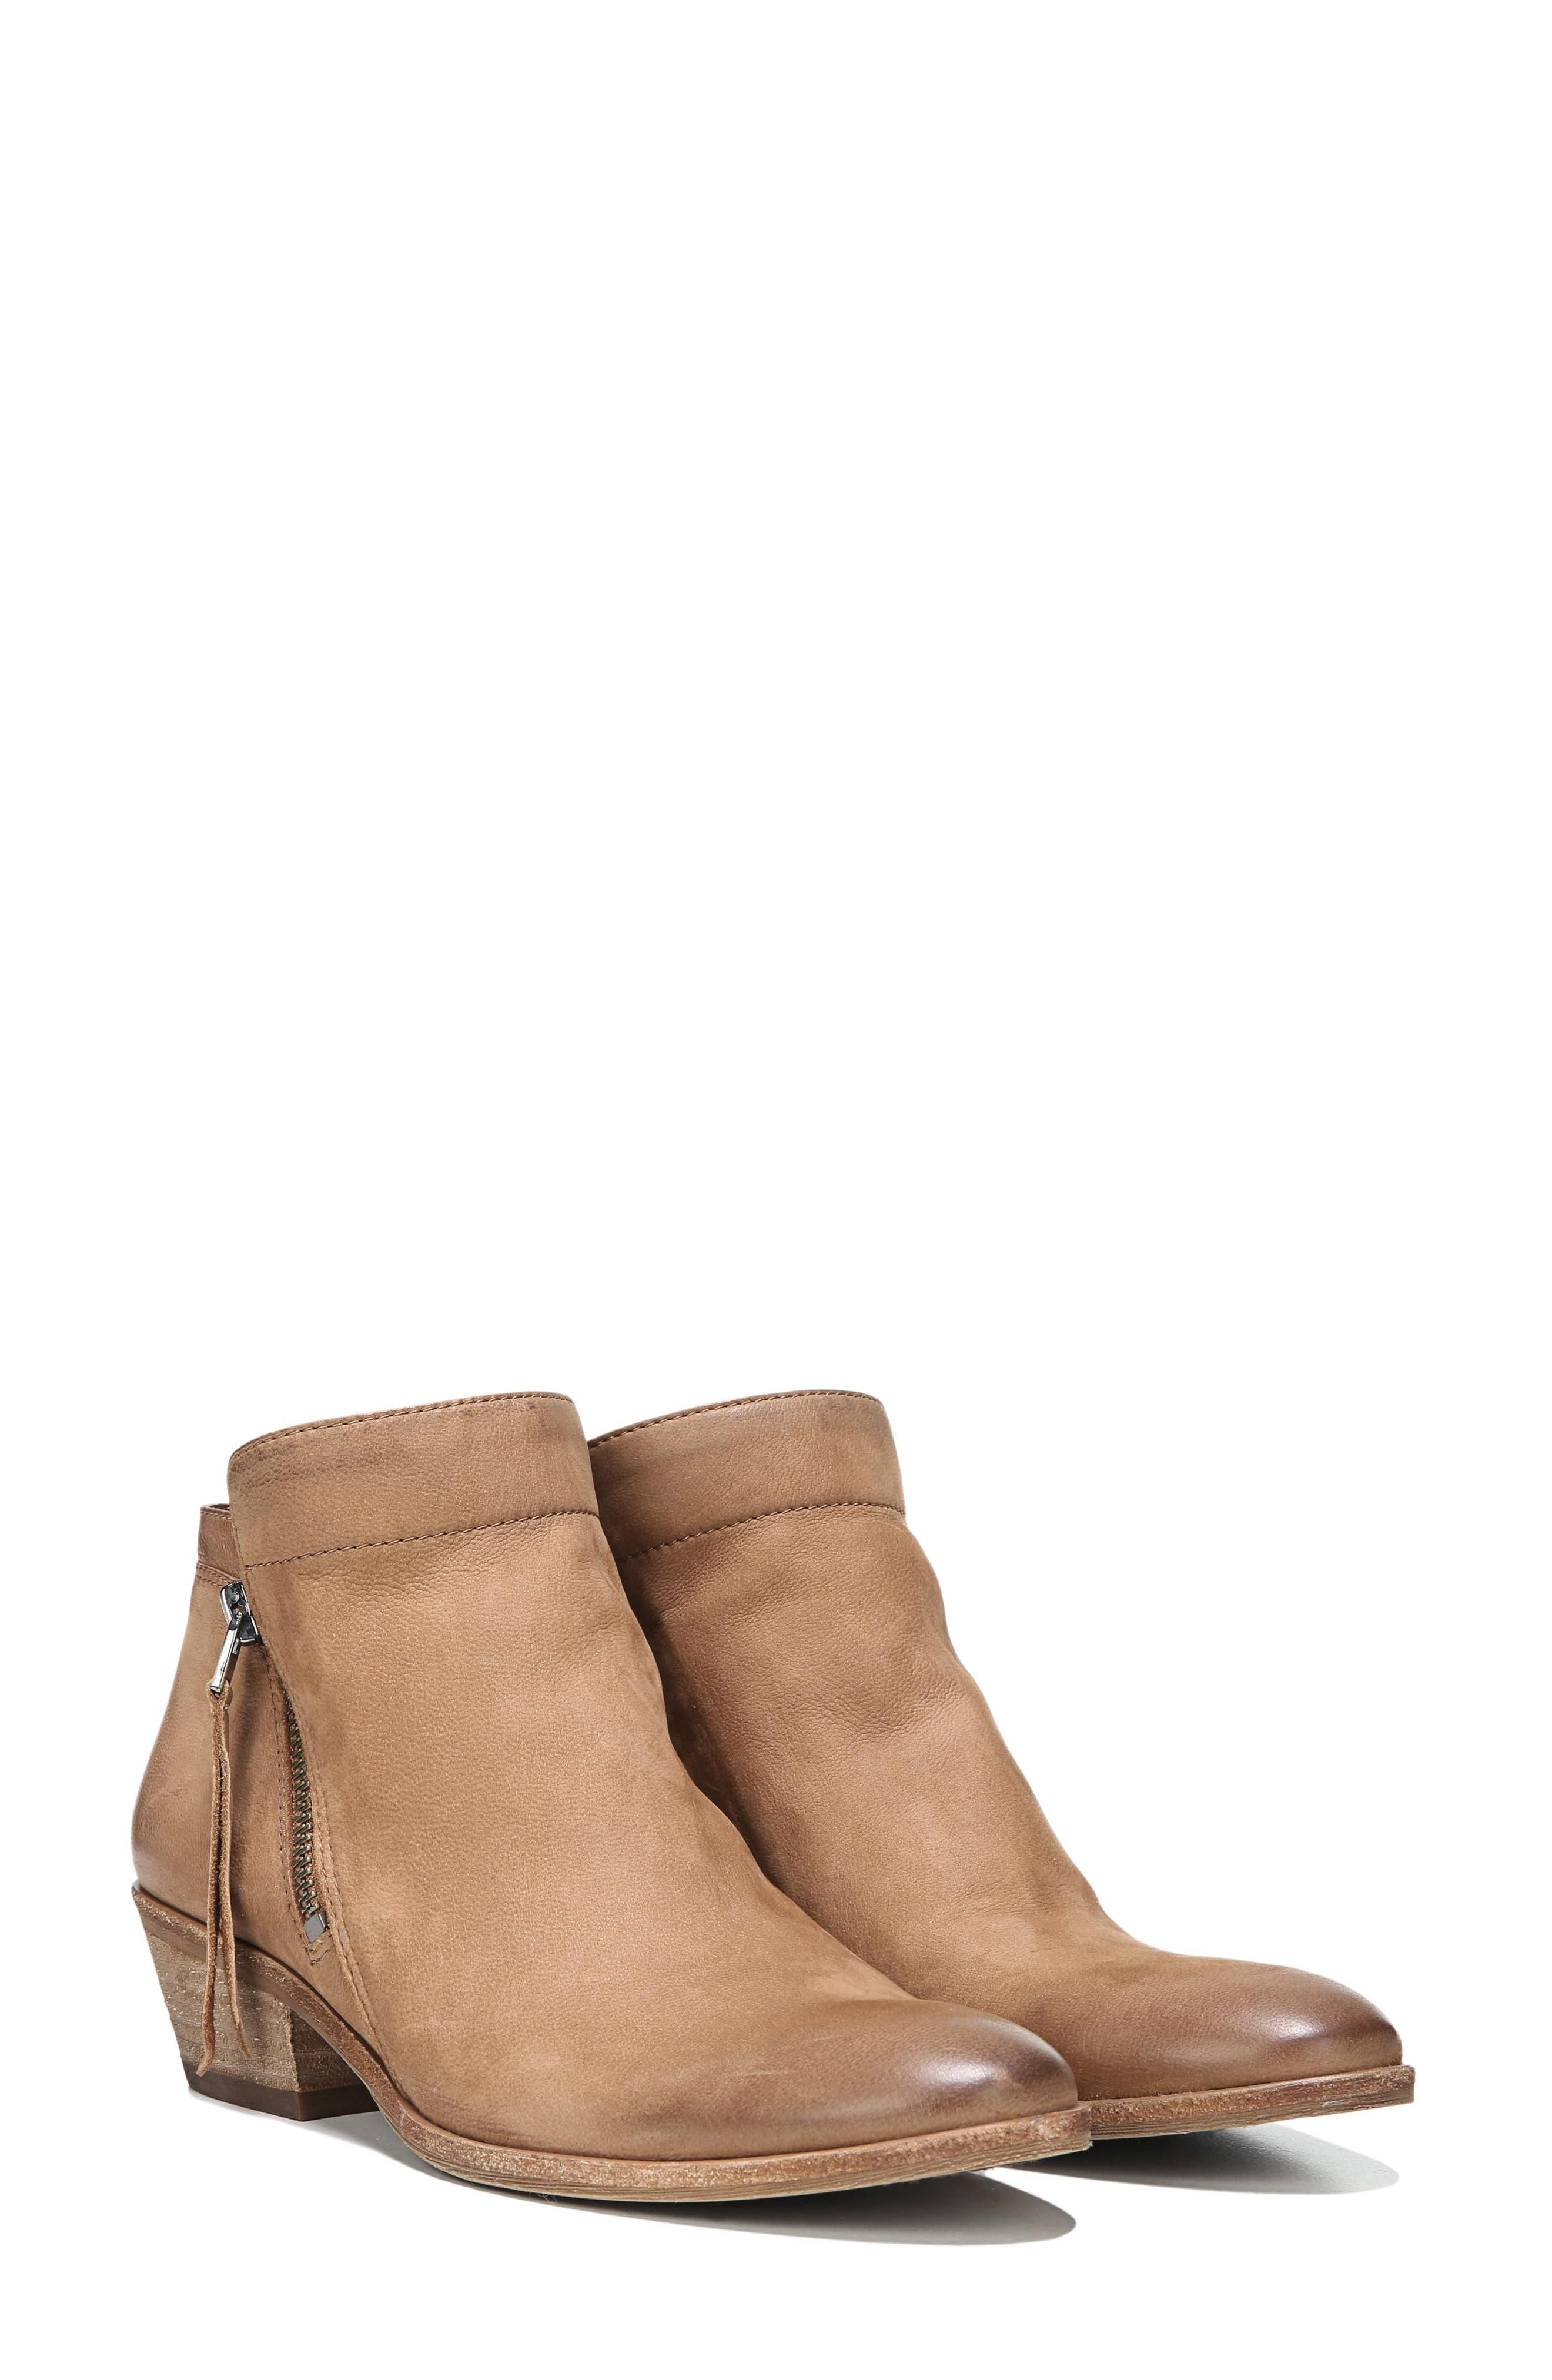 Packer Bootie,                             Alternate thumbnail 8, color,                             DEEP SADDLE LEATHER